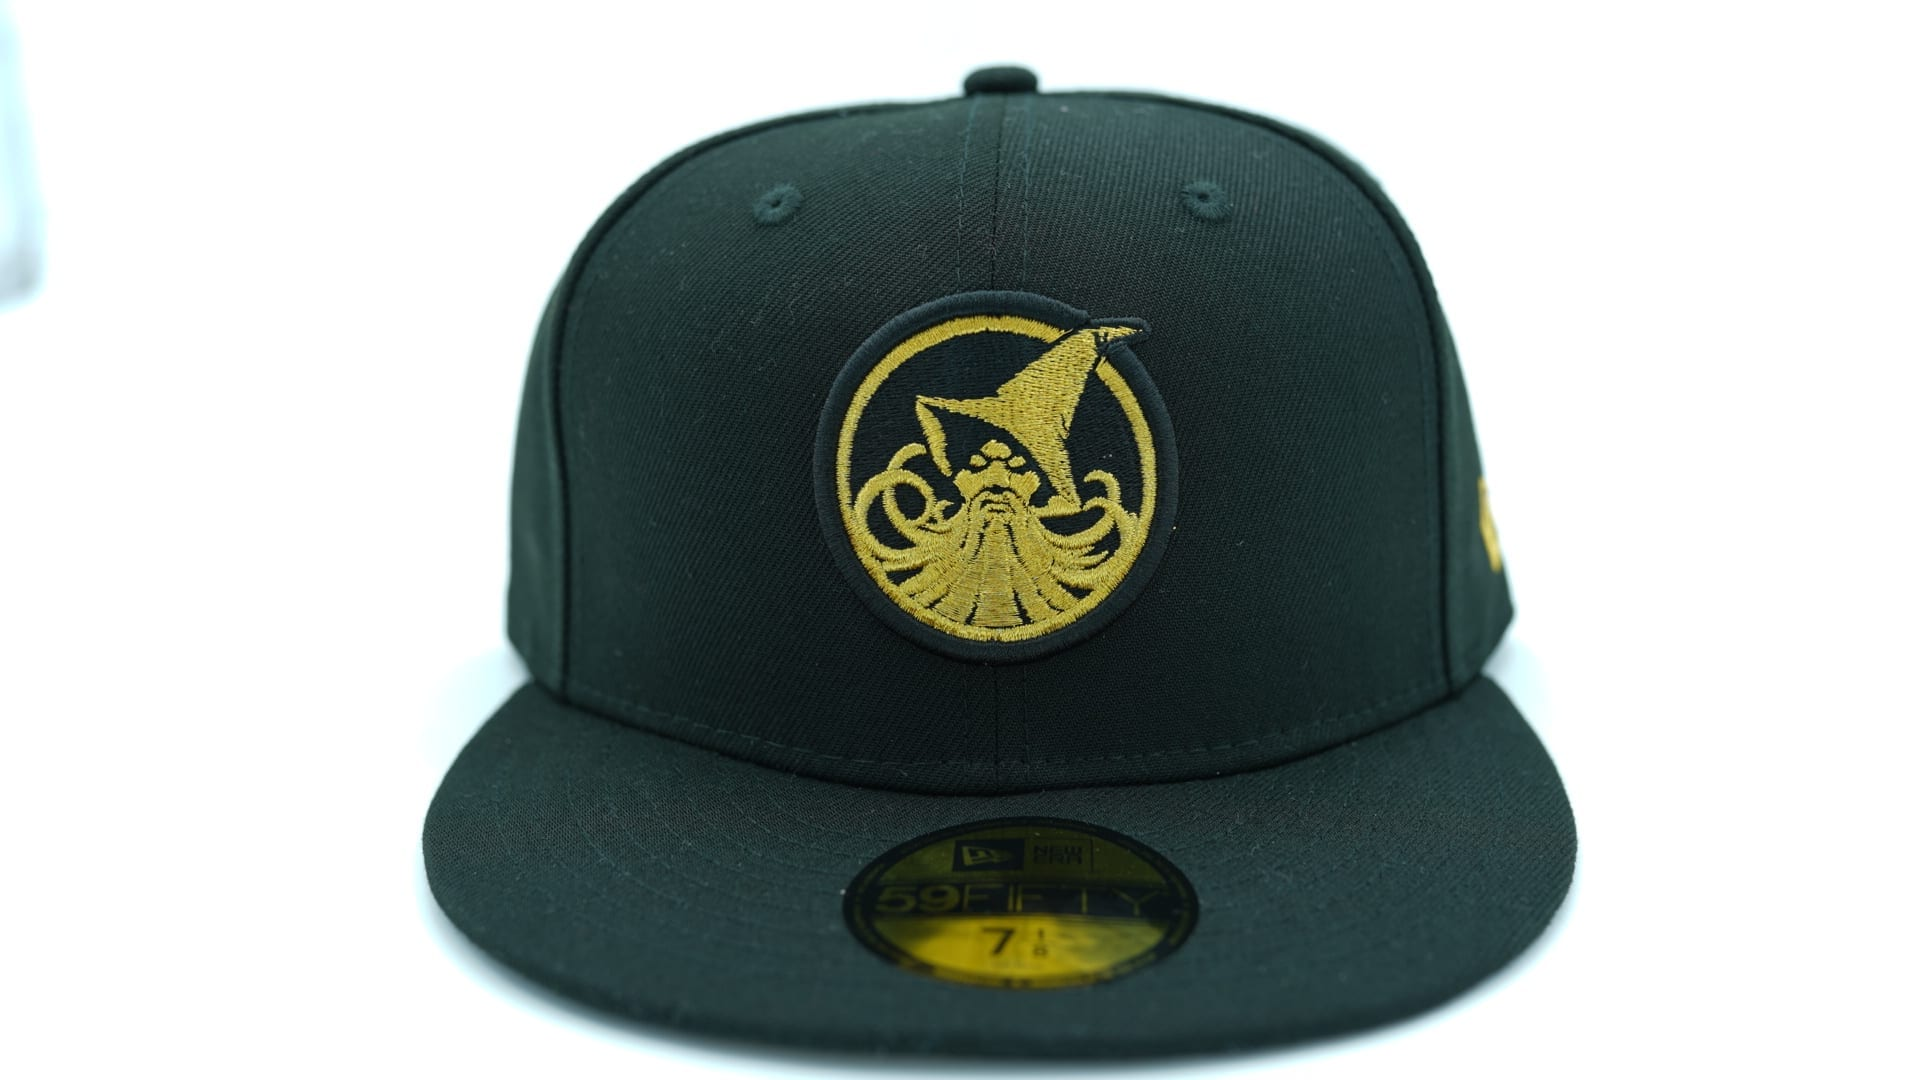 nashville sounds honky tonks 59fifty fitted cap by new era